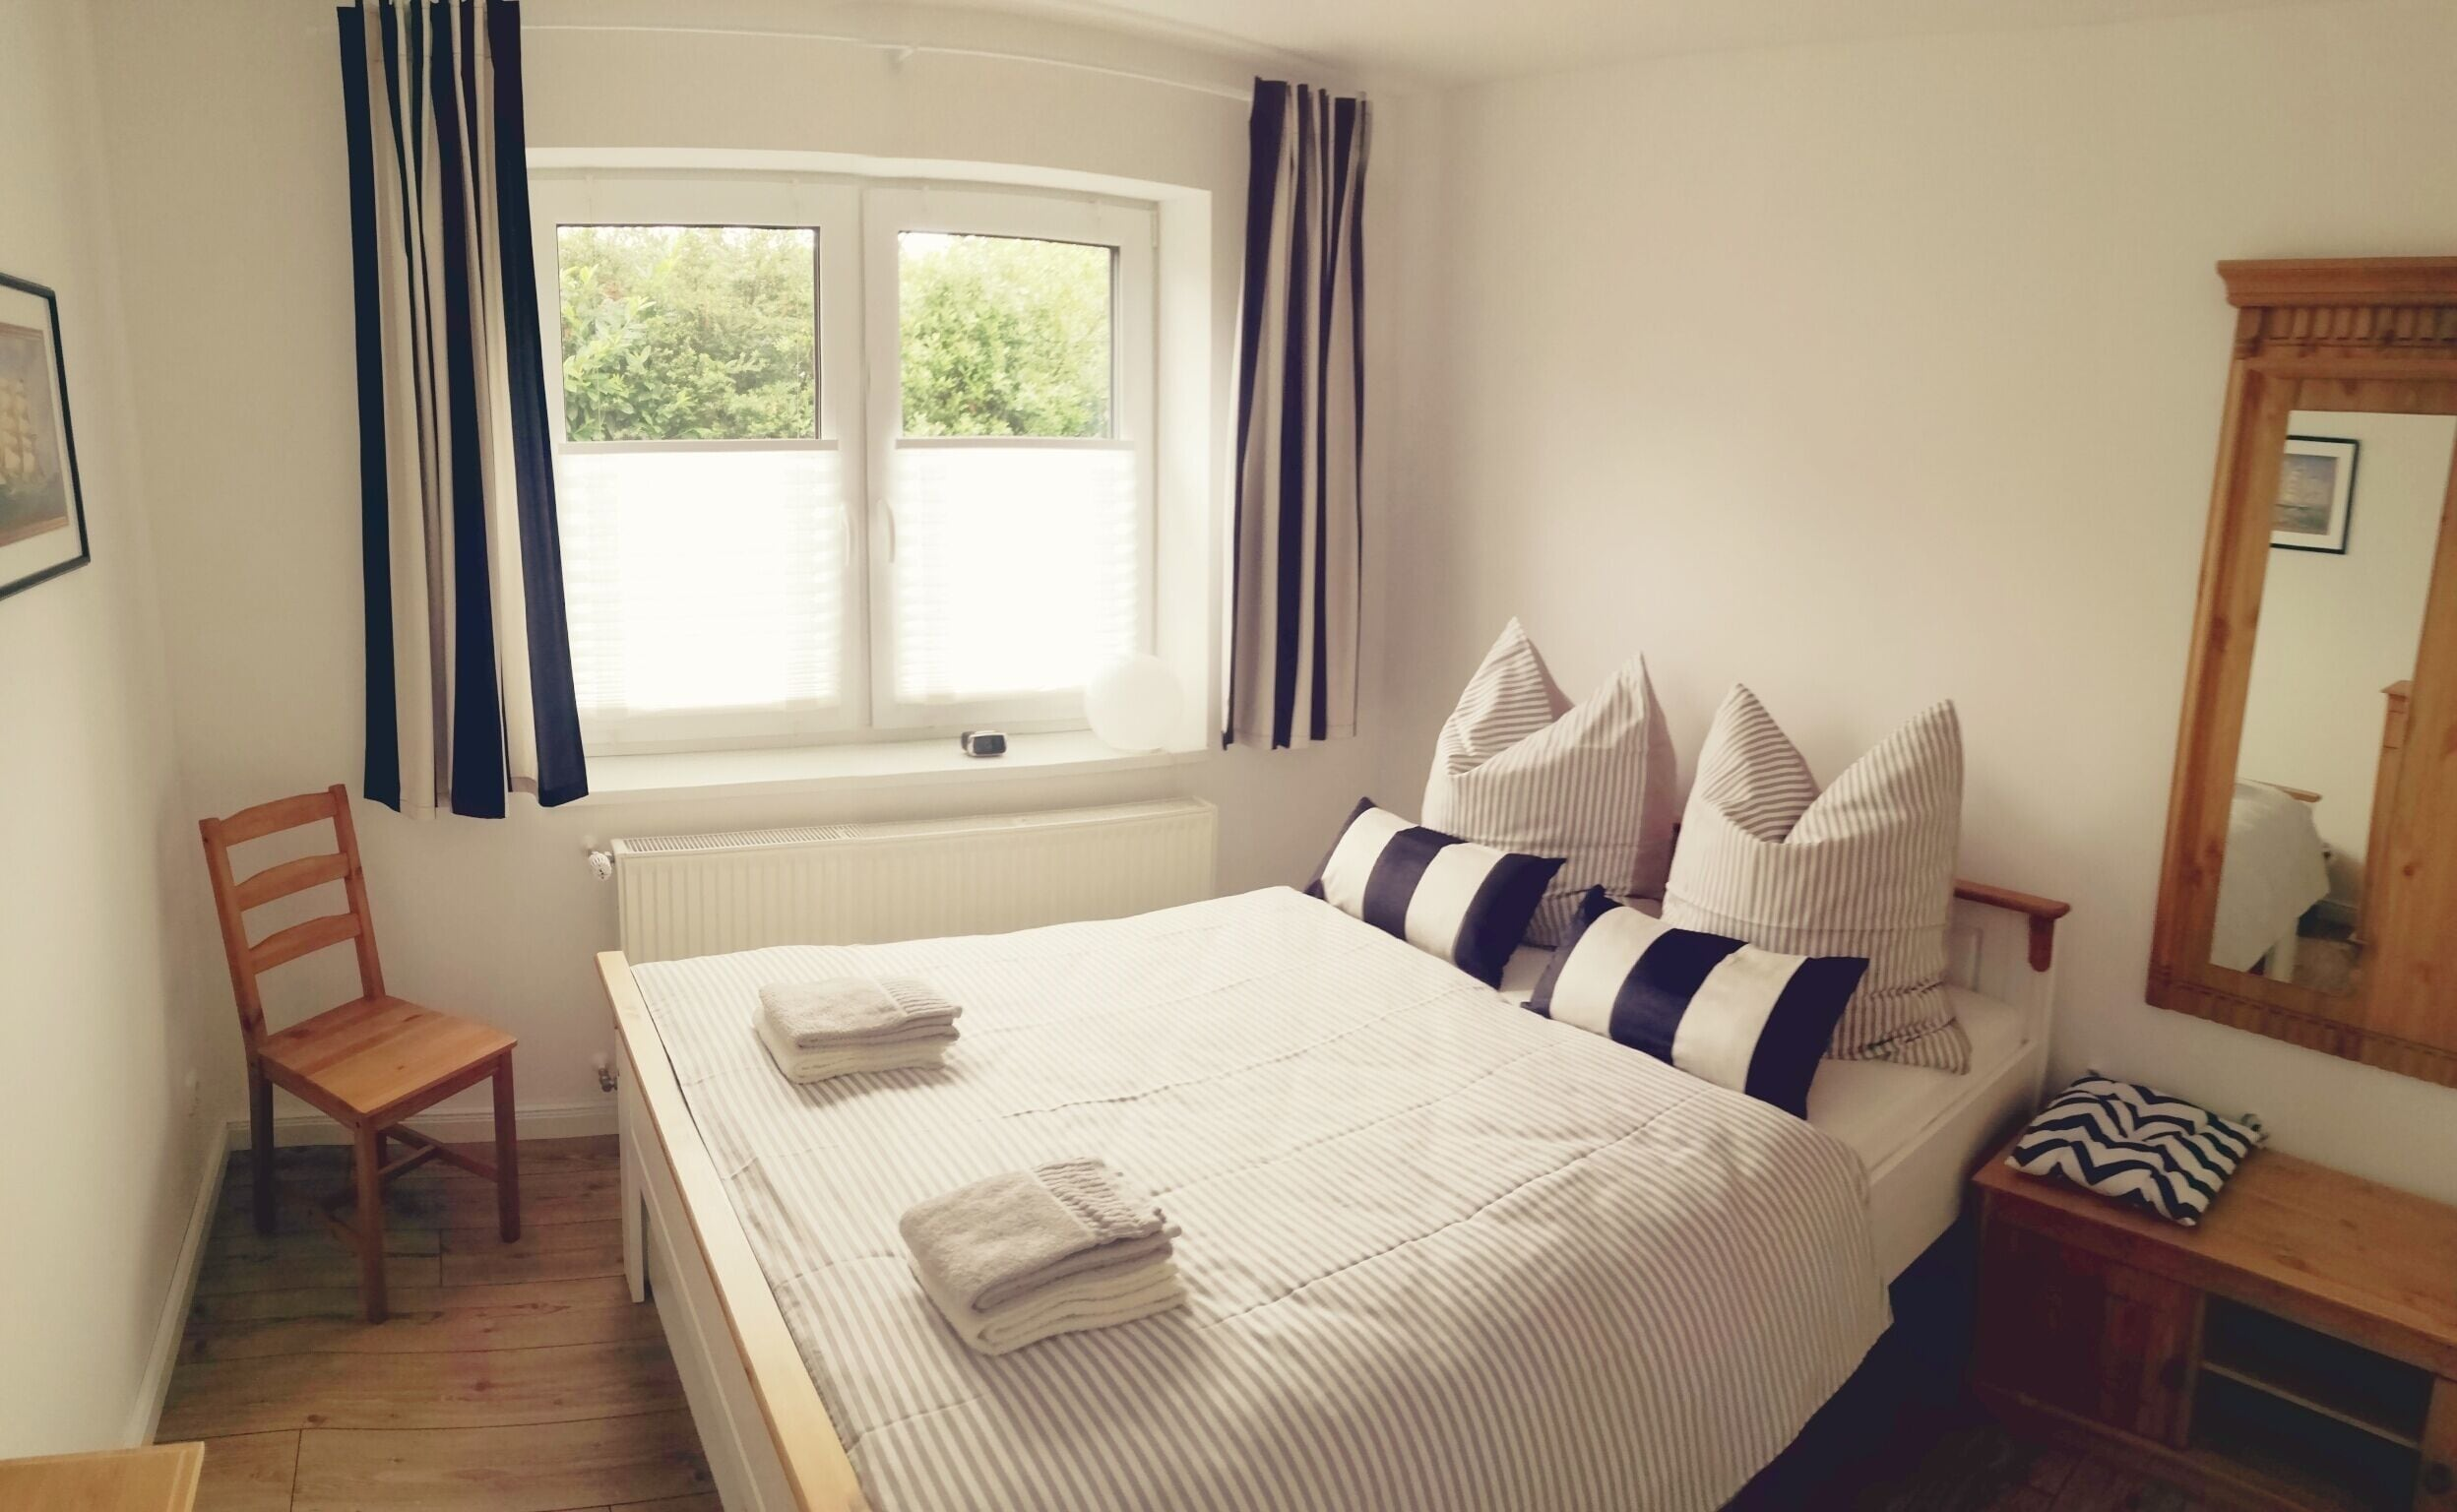 Schlafzimmer Campus Holiday Home On The Weser / Maritime Campus - In Elsfleth, Elsfleth: Hotelbewertungen 2021 | Expedia.de